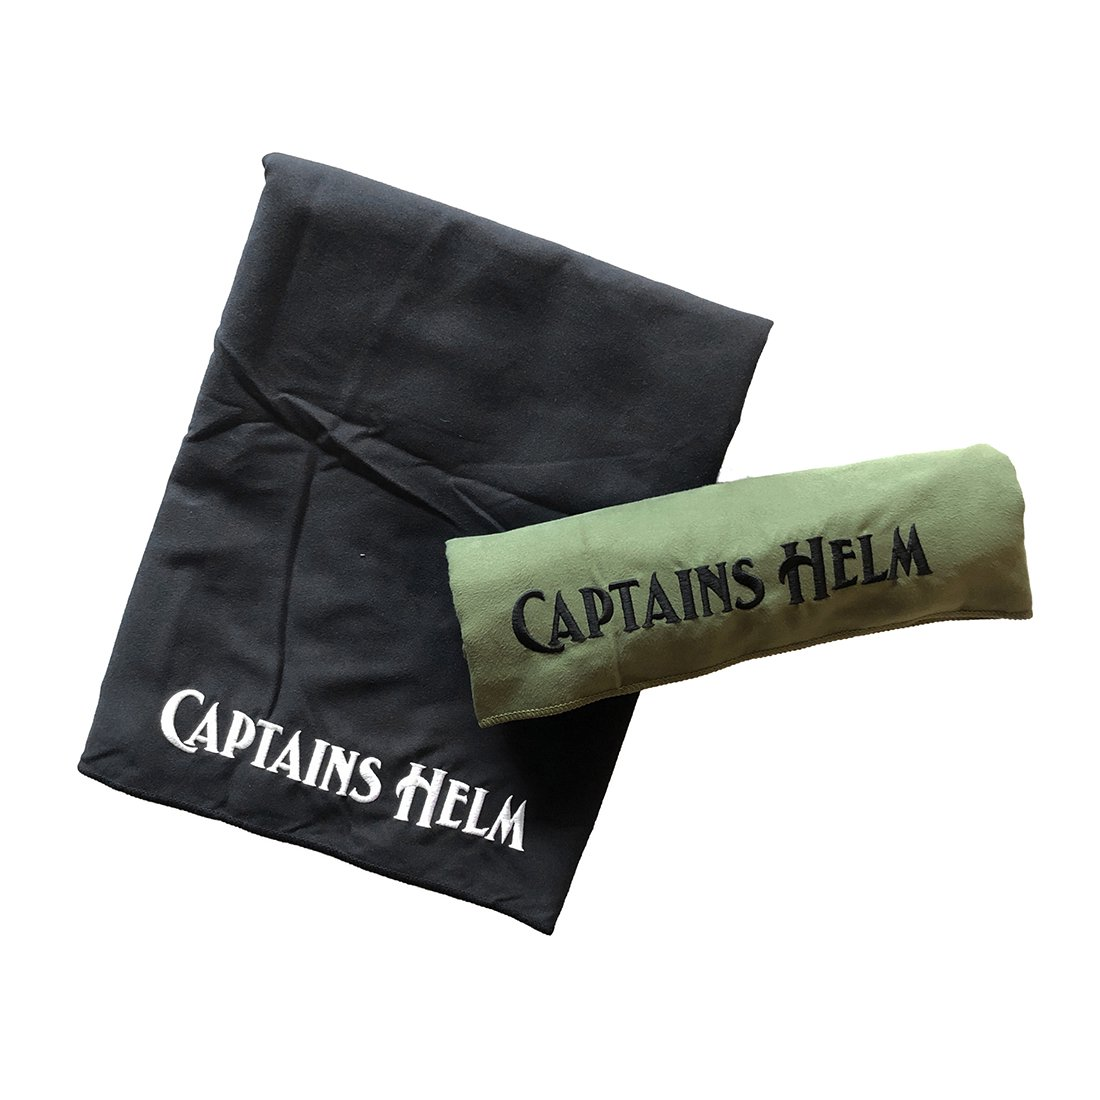 CAPTAINS HELM    #MICROFIBER TOWEL